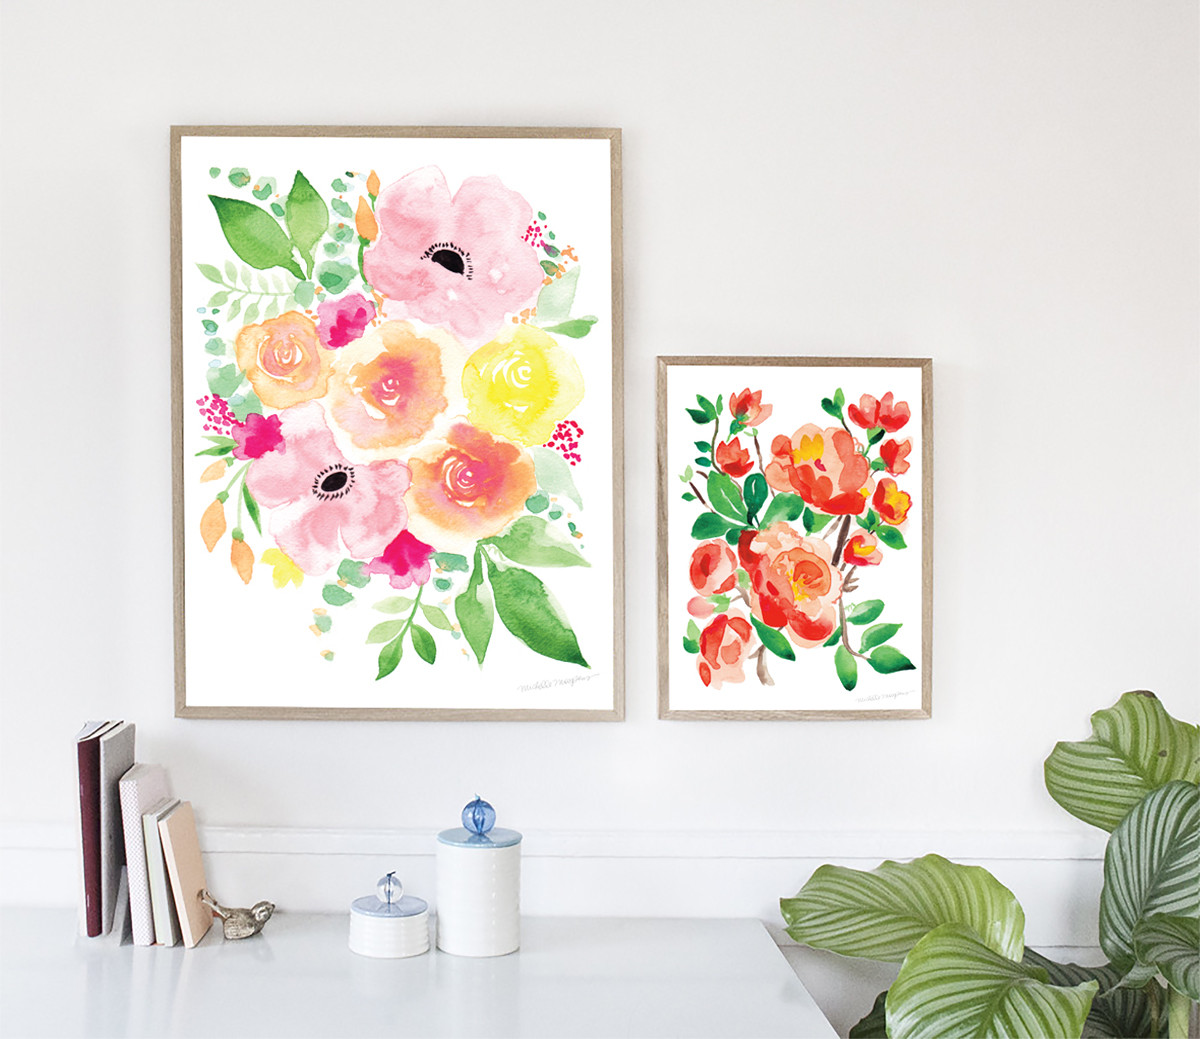 Best ideas about Wall Art Prints . Save or Pin SPRING INSPIRED WALL ART PRINTS Now.